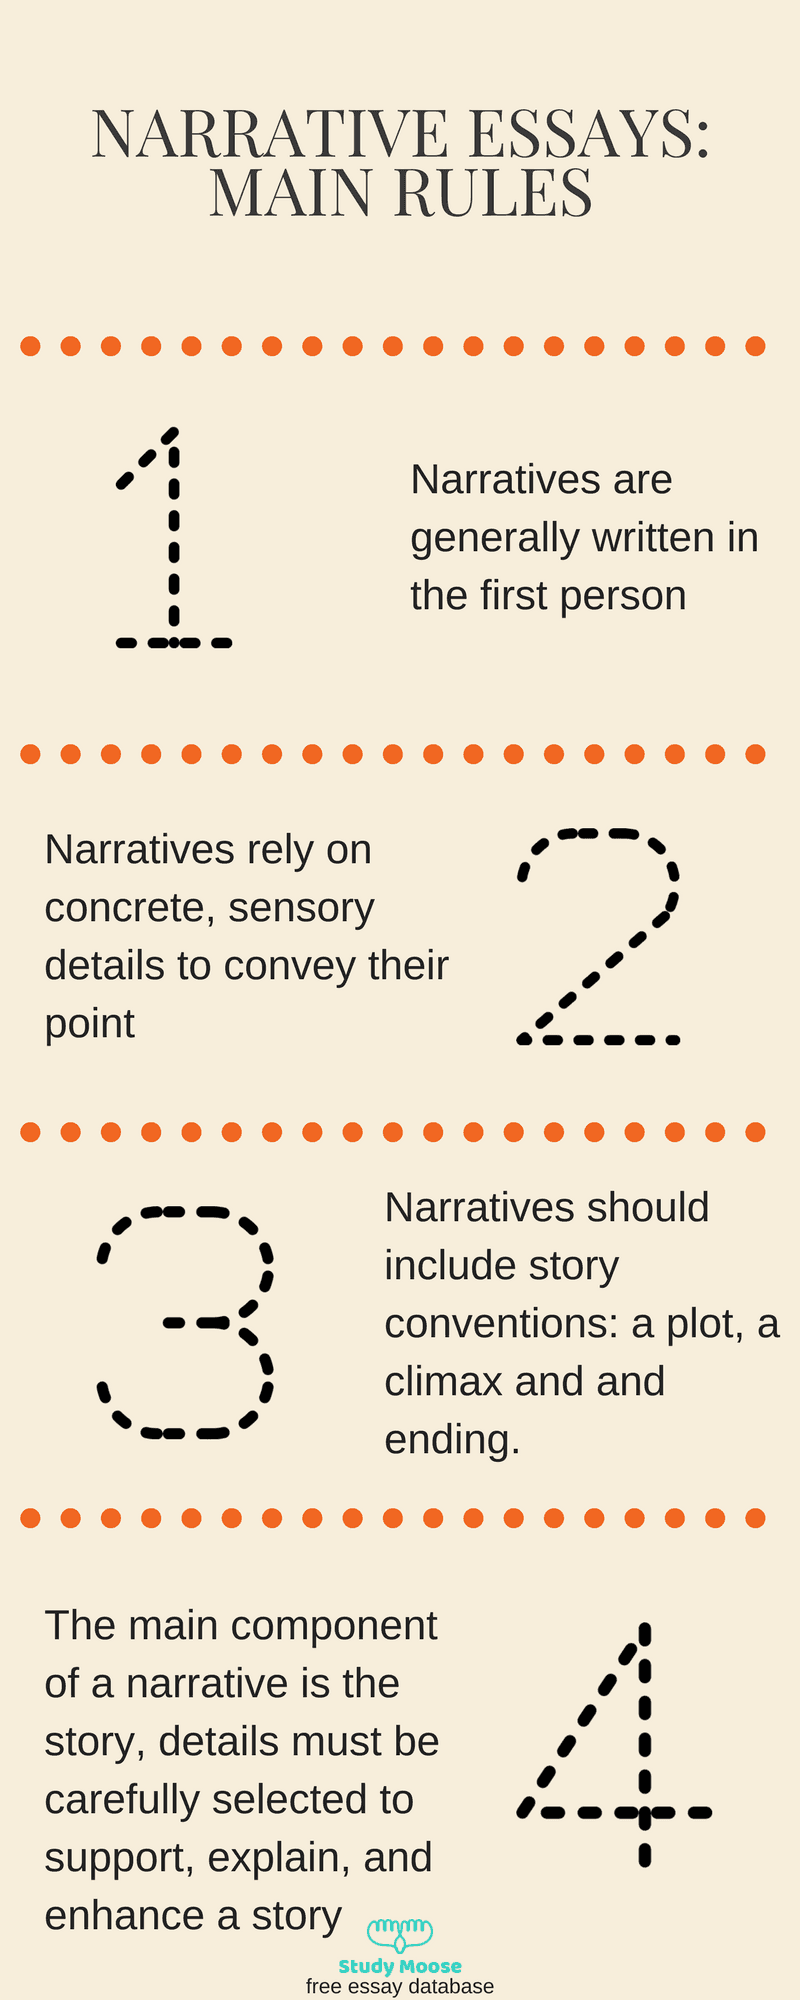 narrative essay main rules